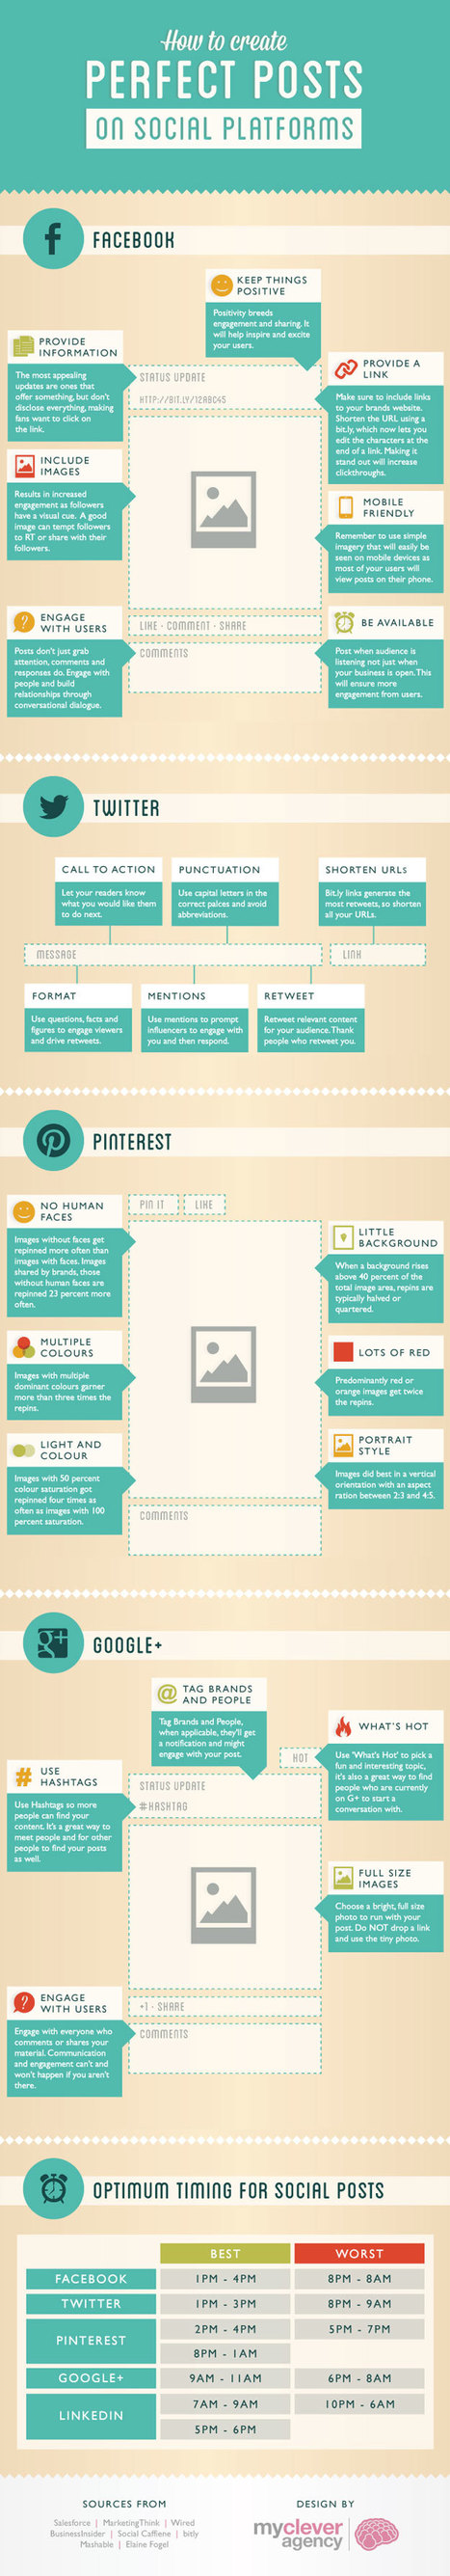 How To Create Effective Posts on the 4 Main Social Sites [Infographic] | Digital presence | Scoop.it